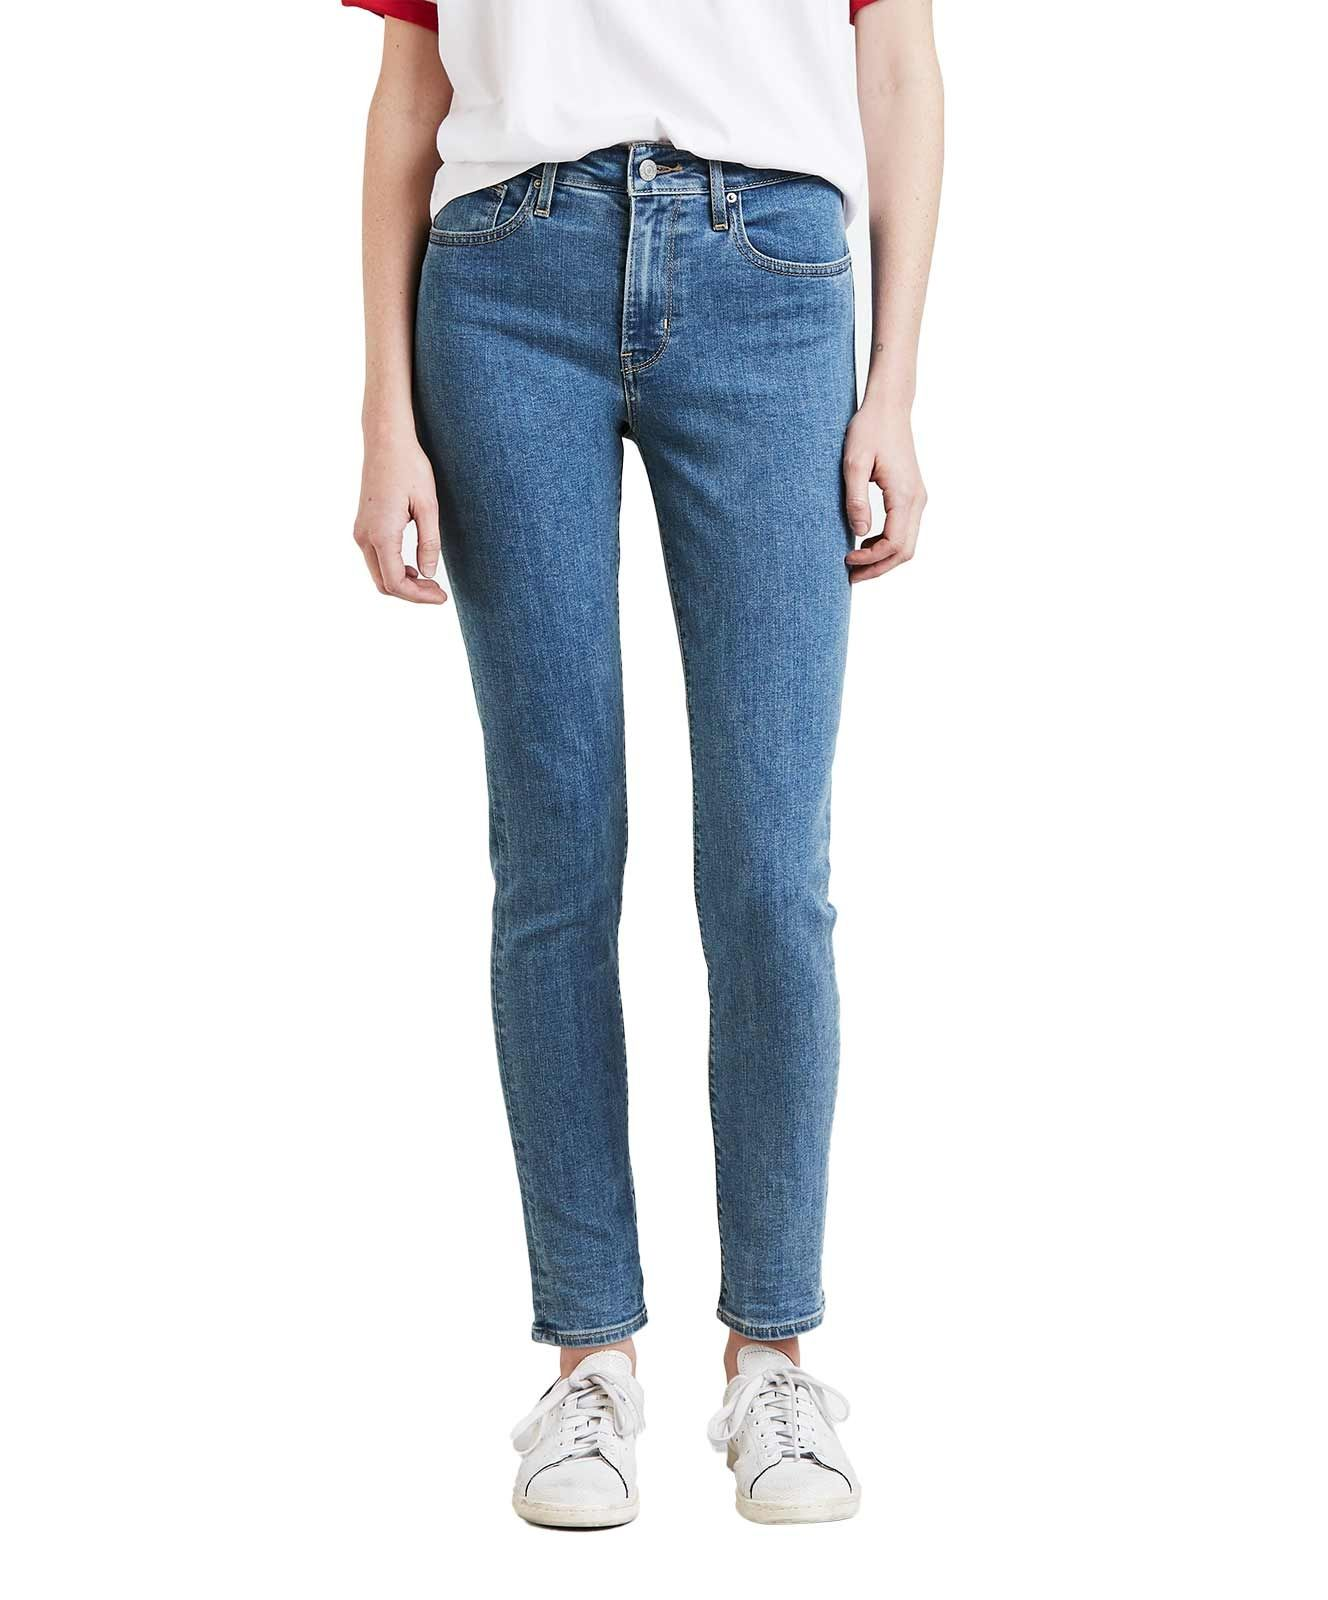 Levis 721 High Rise Skinny Jeans in Stonewash